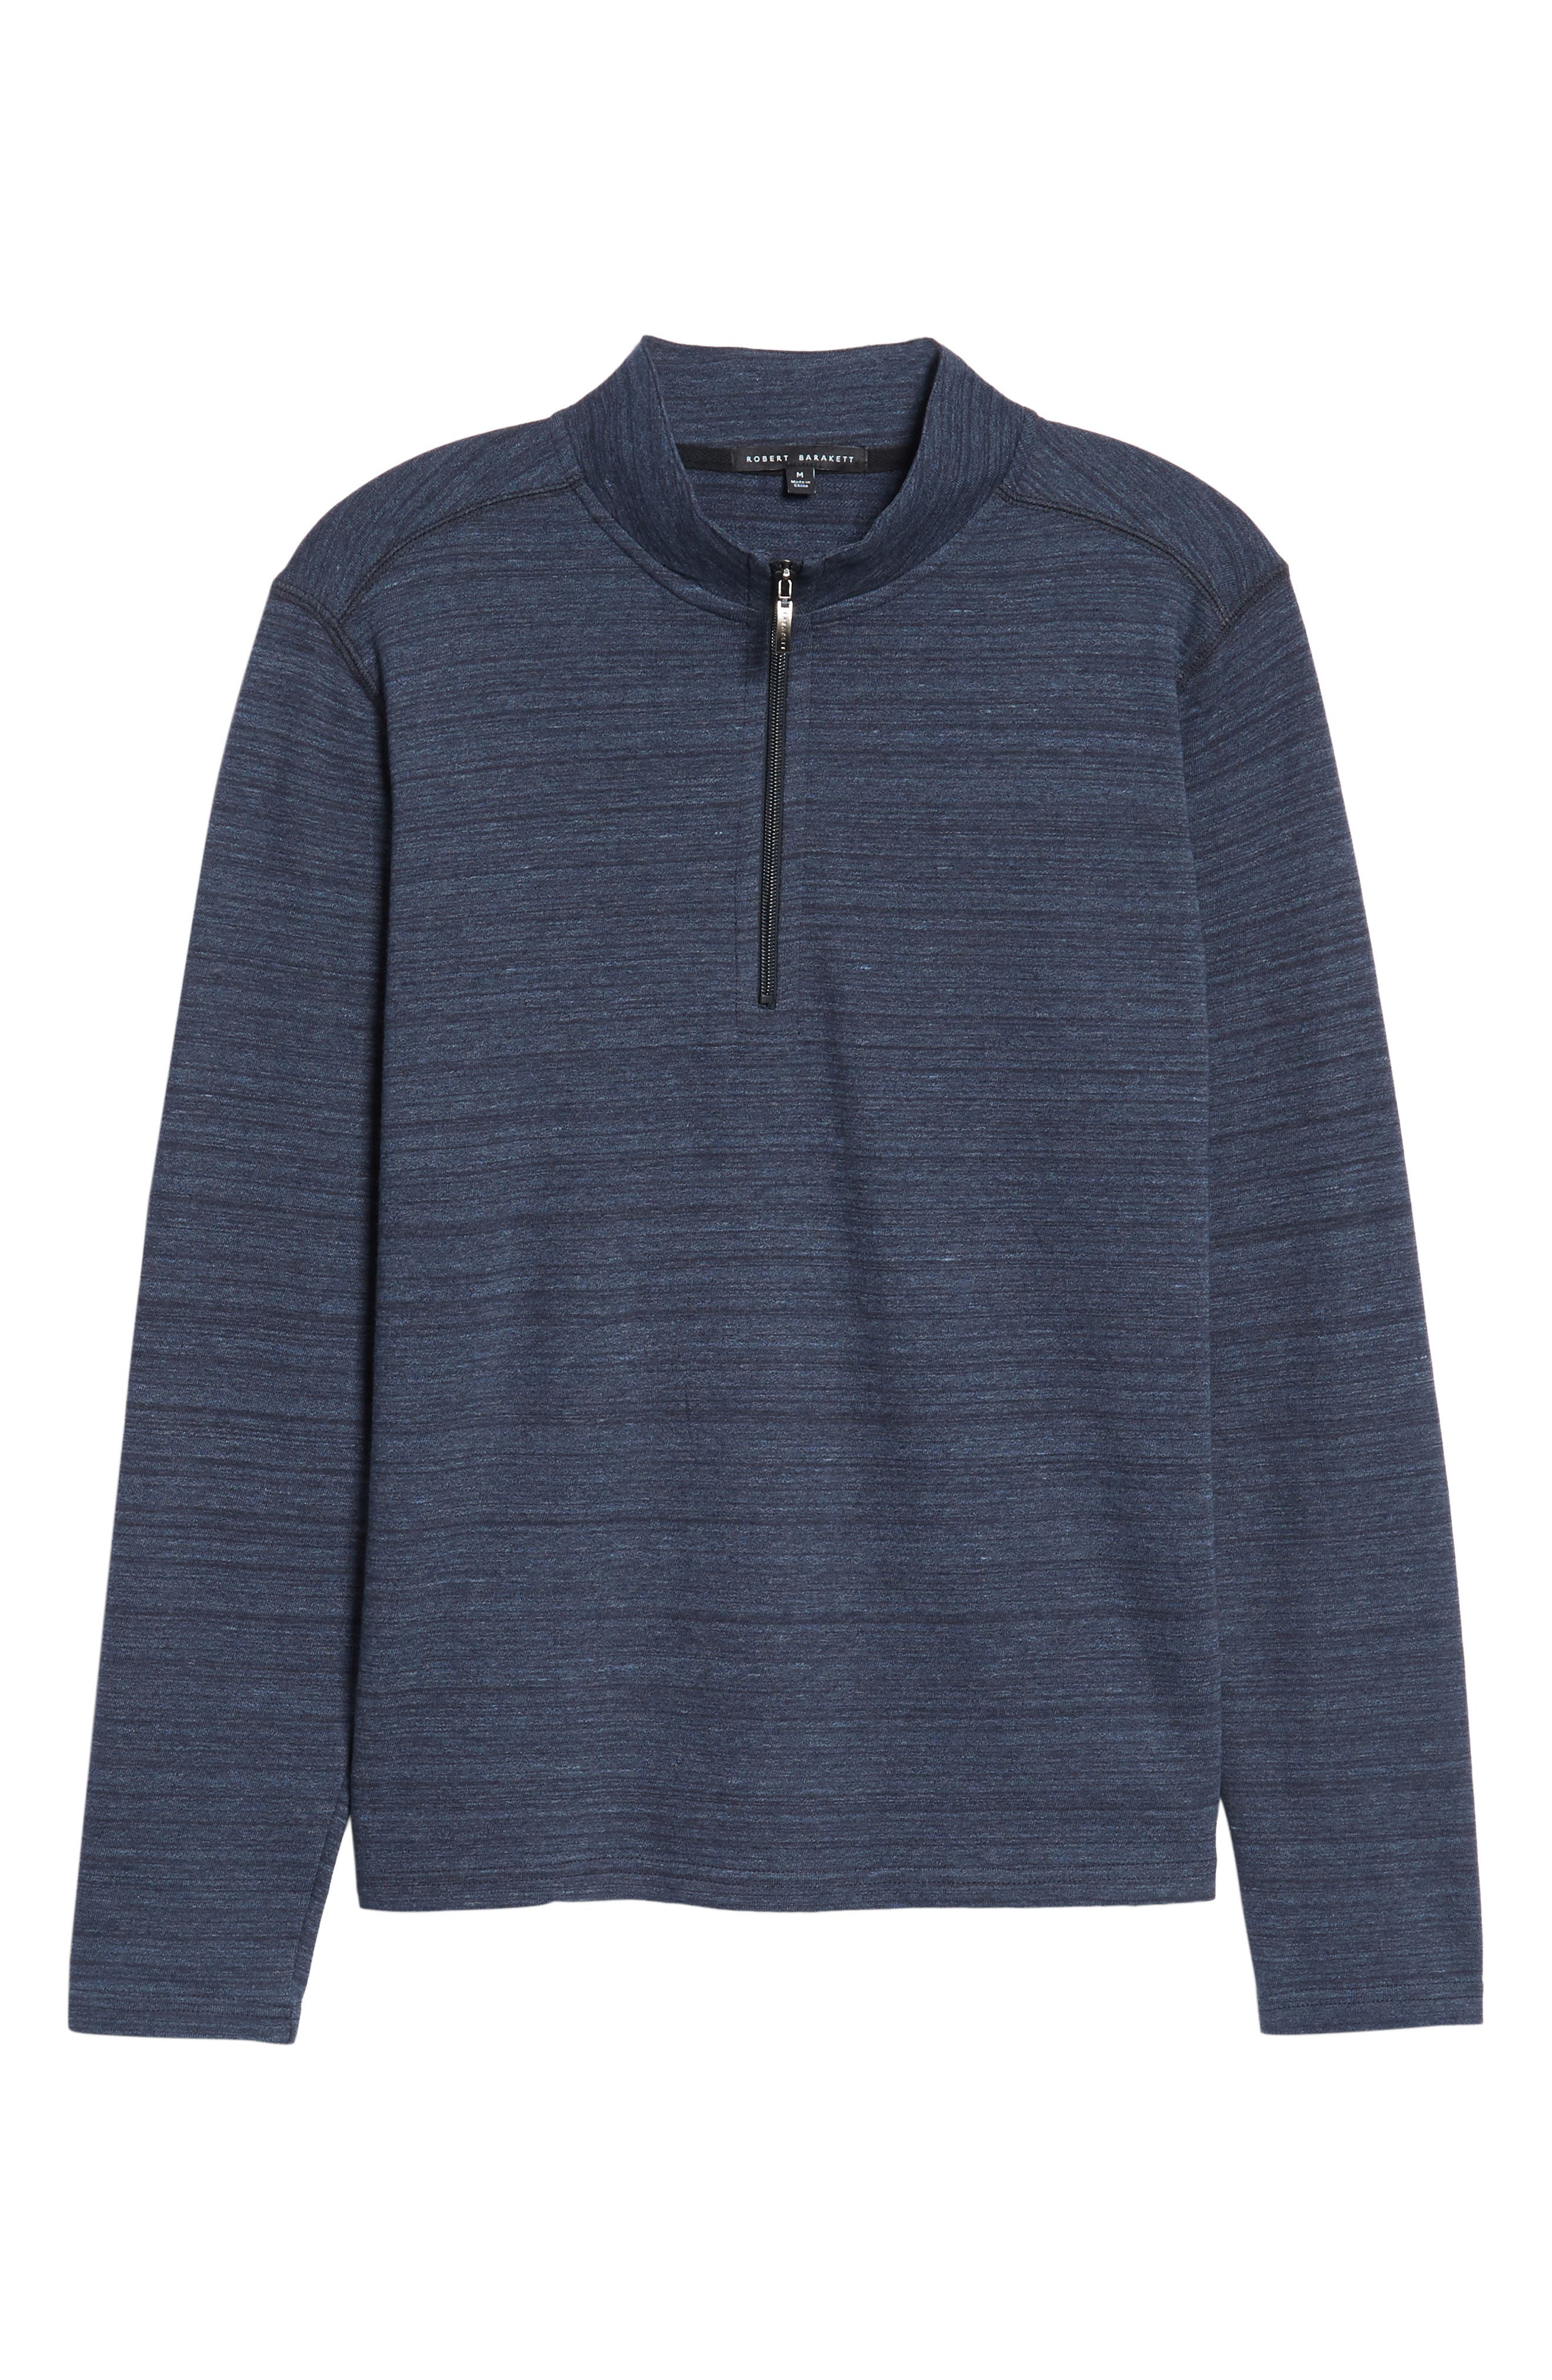 Marcel Quarter Zip Pullover,                             Alternate thumbnail 6, color,                             525